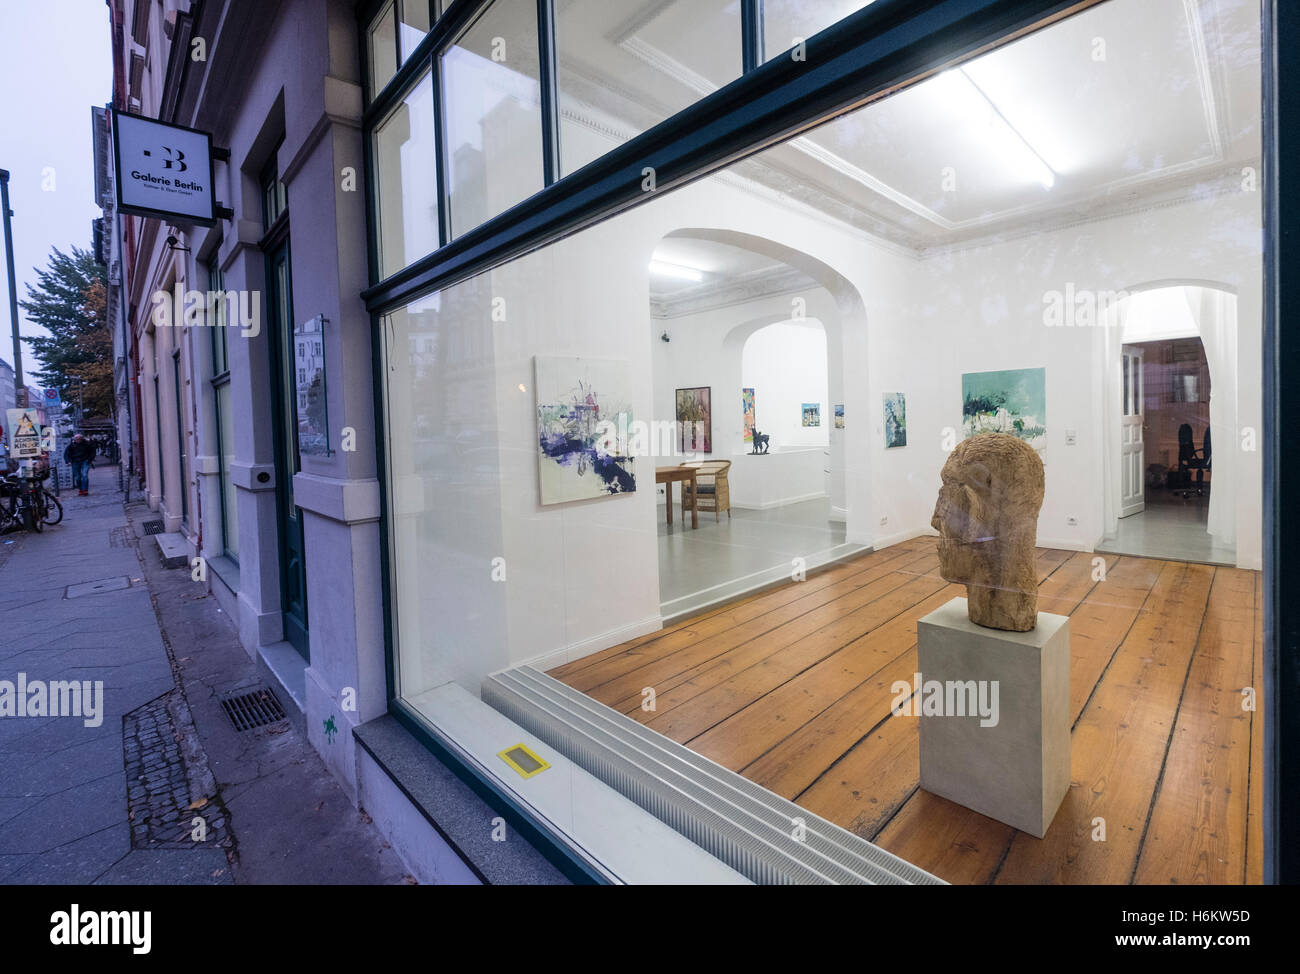 Exterior of Galerie Berlin,  art gallery on Auguststrasse a street with many art galleries in Mitte Berlin Germany - Stock Image